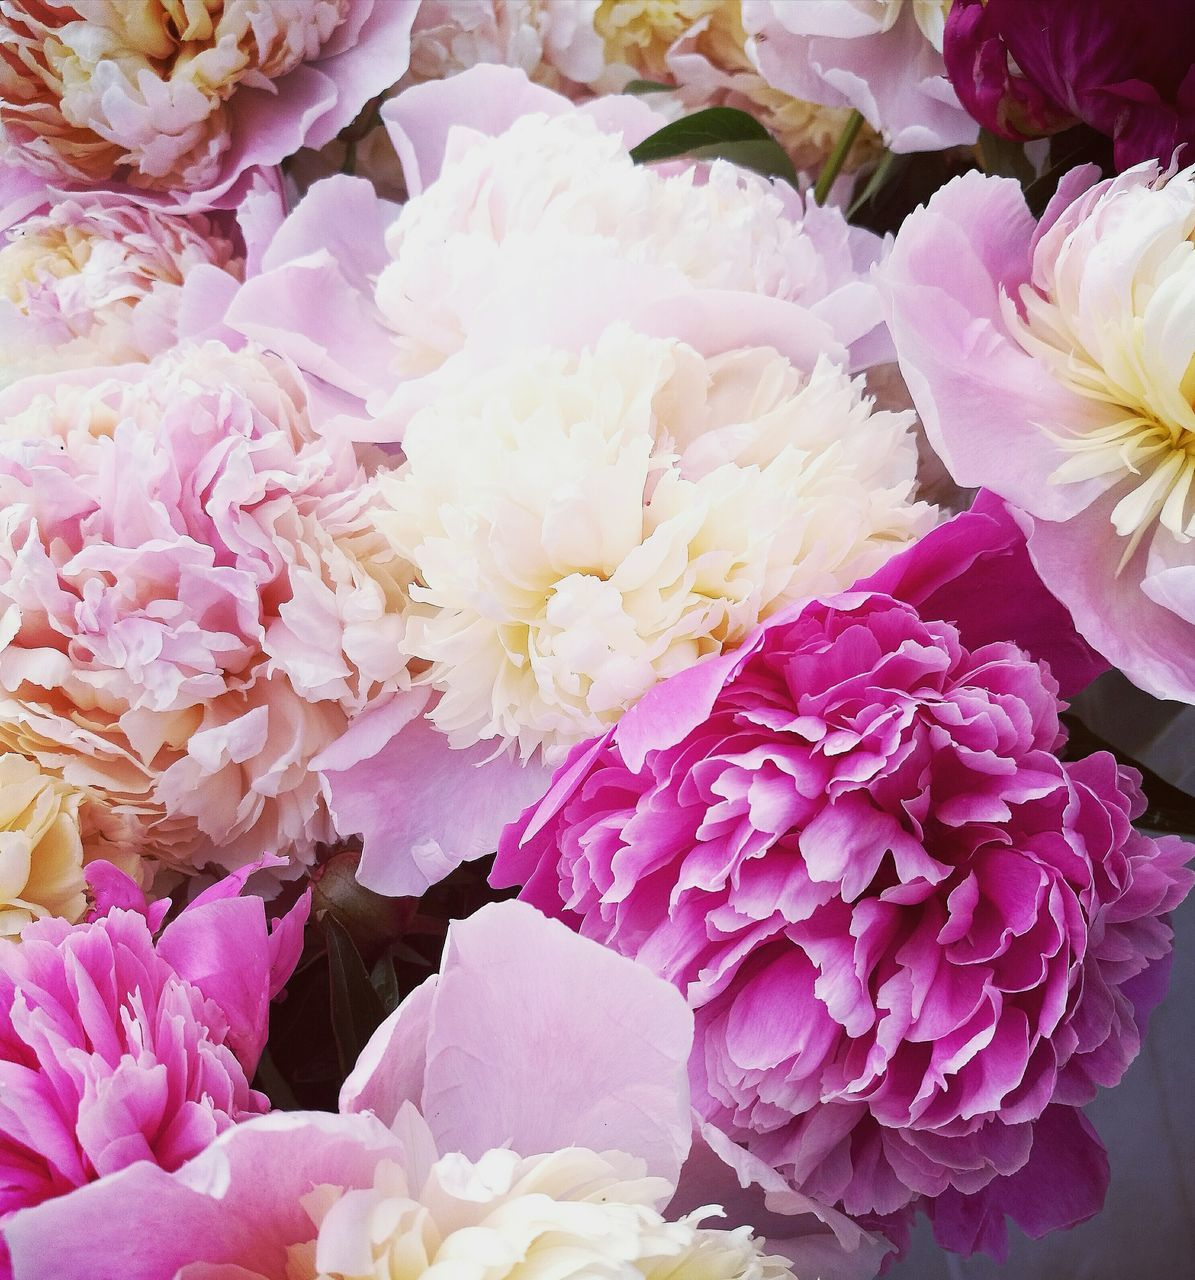 flower, fragility, petal, beauty in nature, flower head, nature, freshness, no people, pink color, close-up, day, growth, springtime, bouquet, outdoors, peony